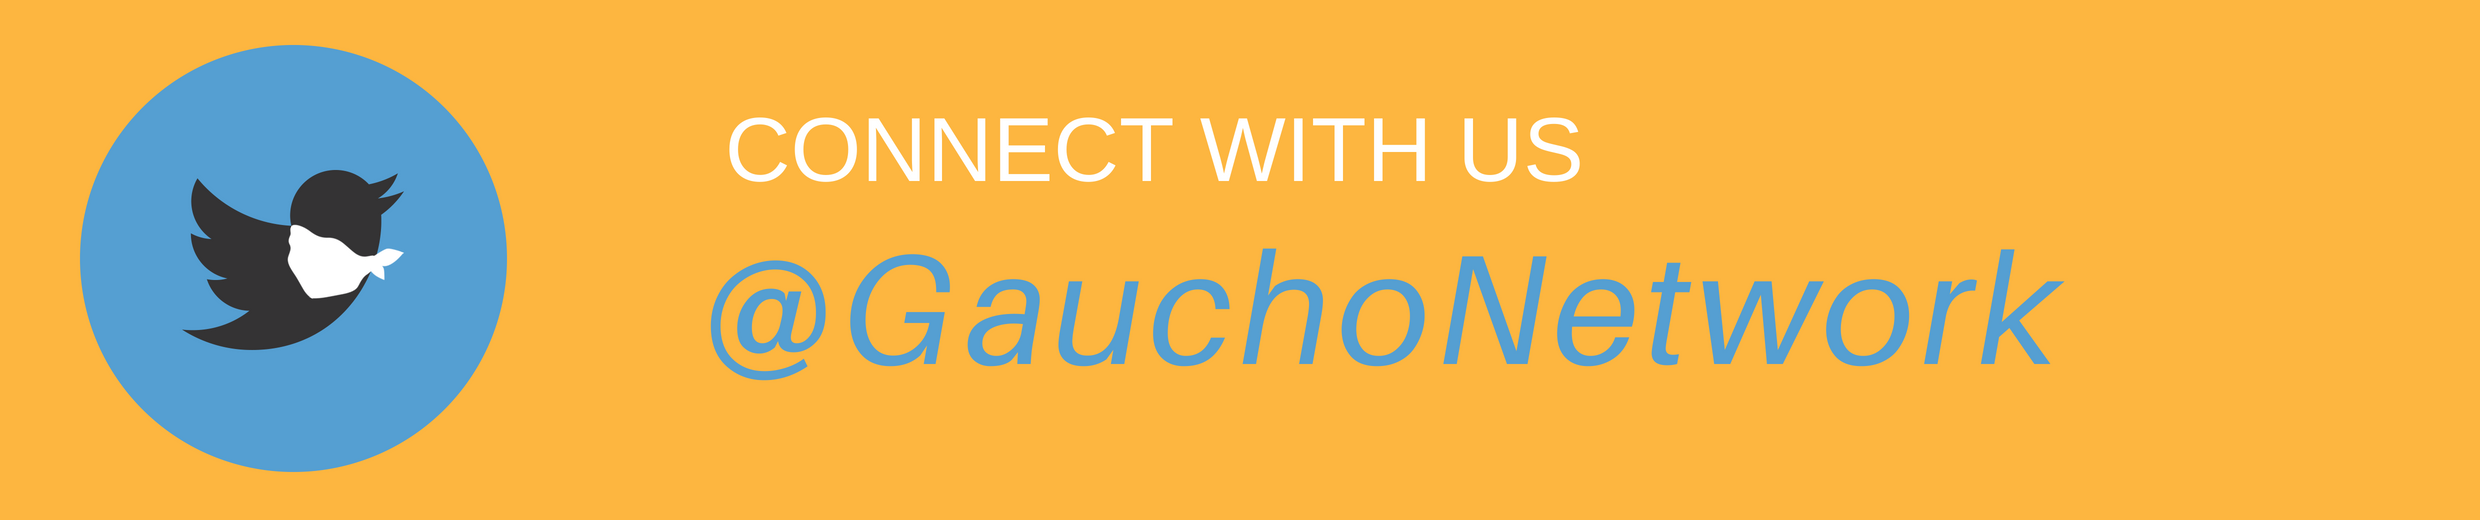 Connect with us @GauchoNetwork